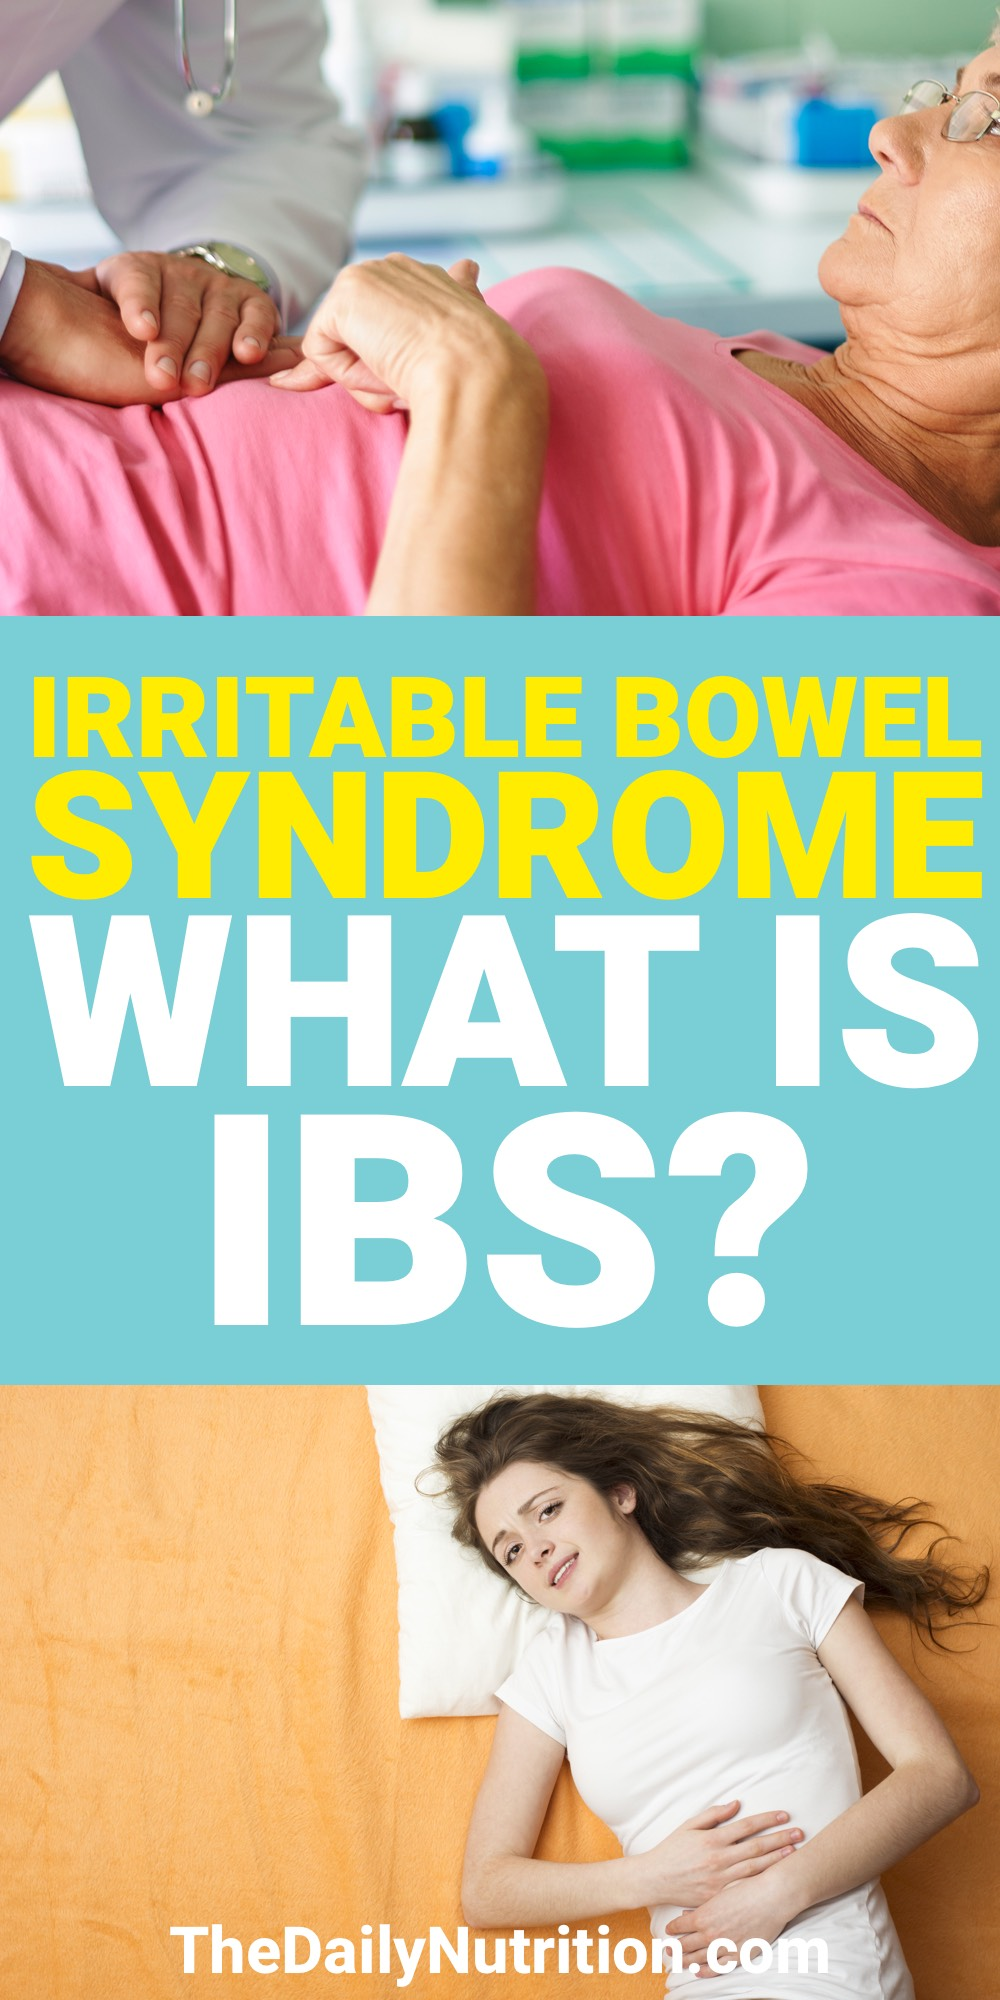 If you aren't sure if you have irritable bowel syndrome, you can find irritable bowel syndrome symptoms here.